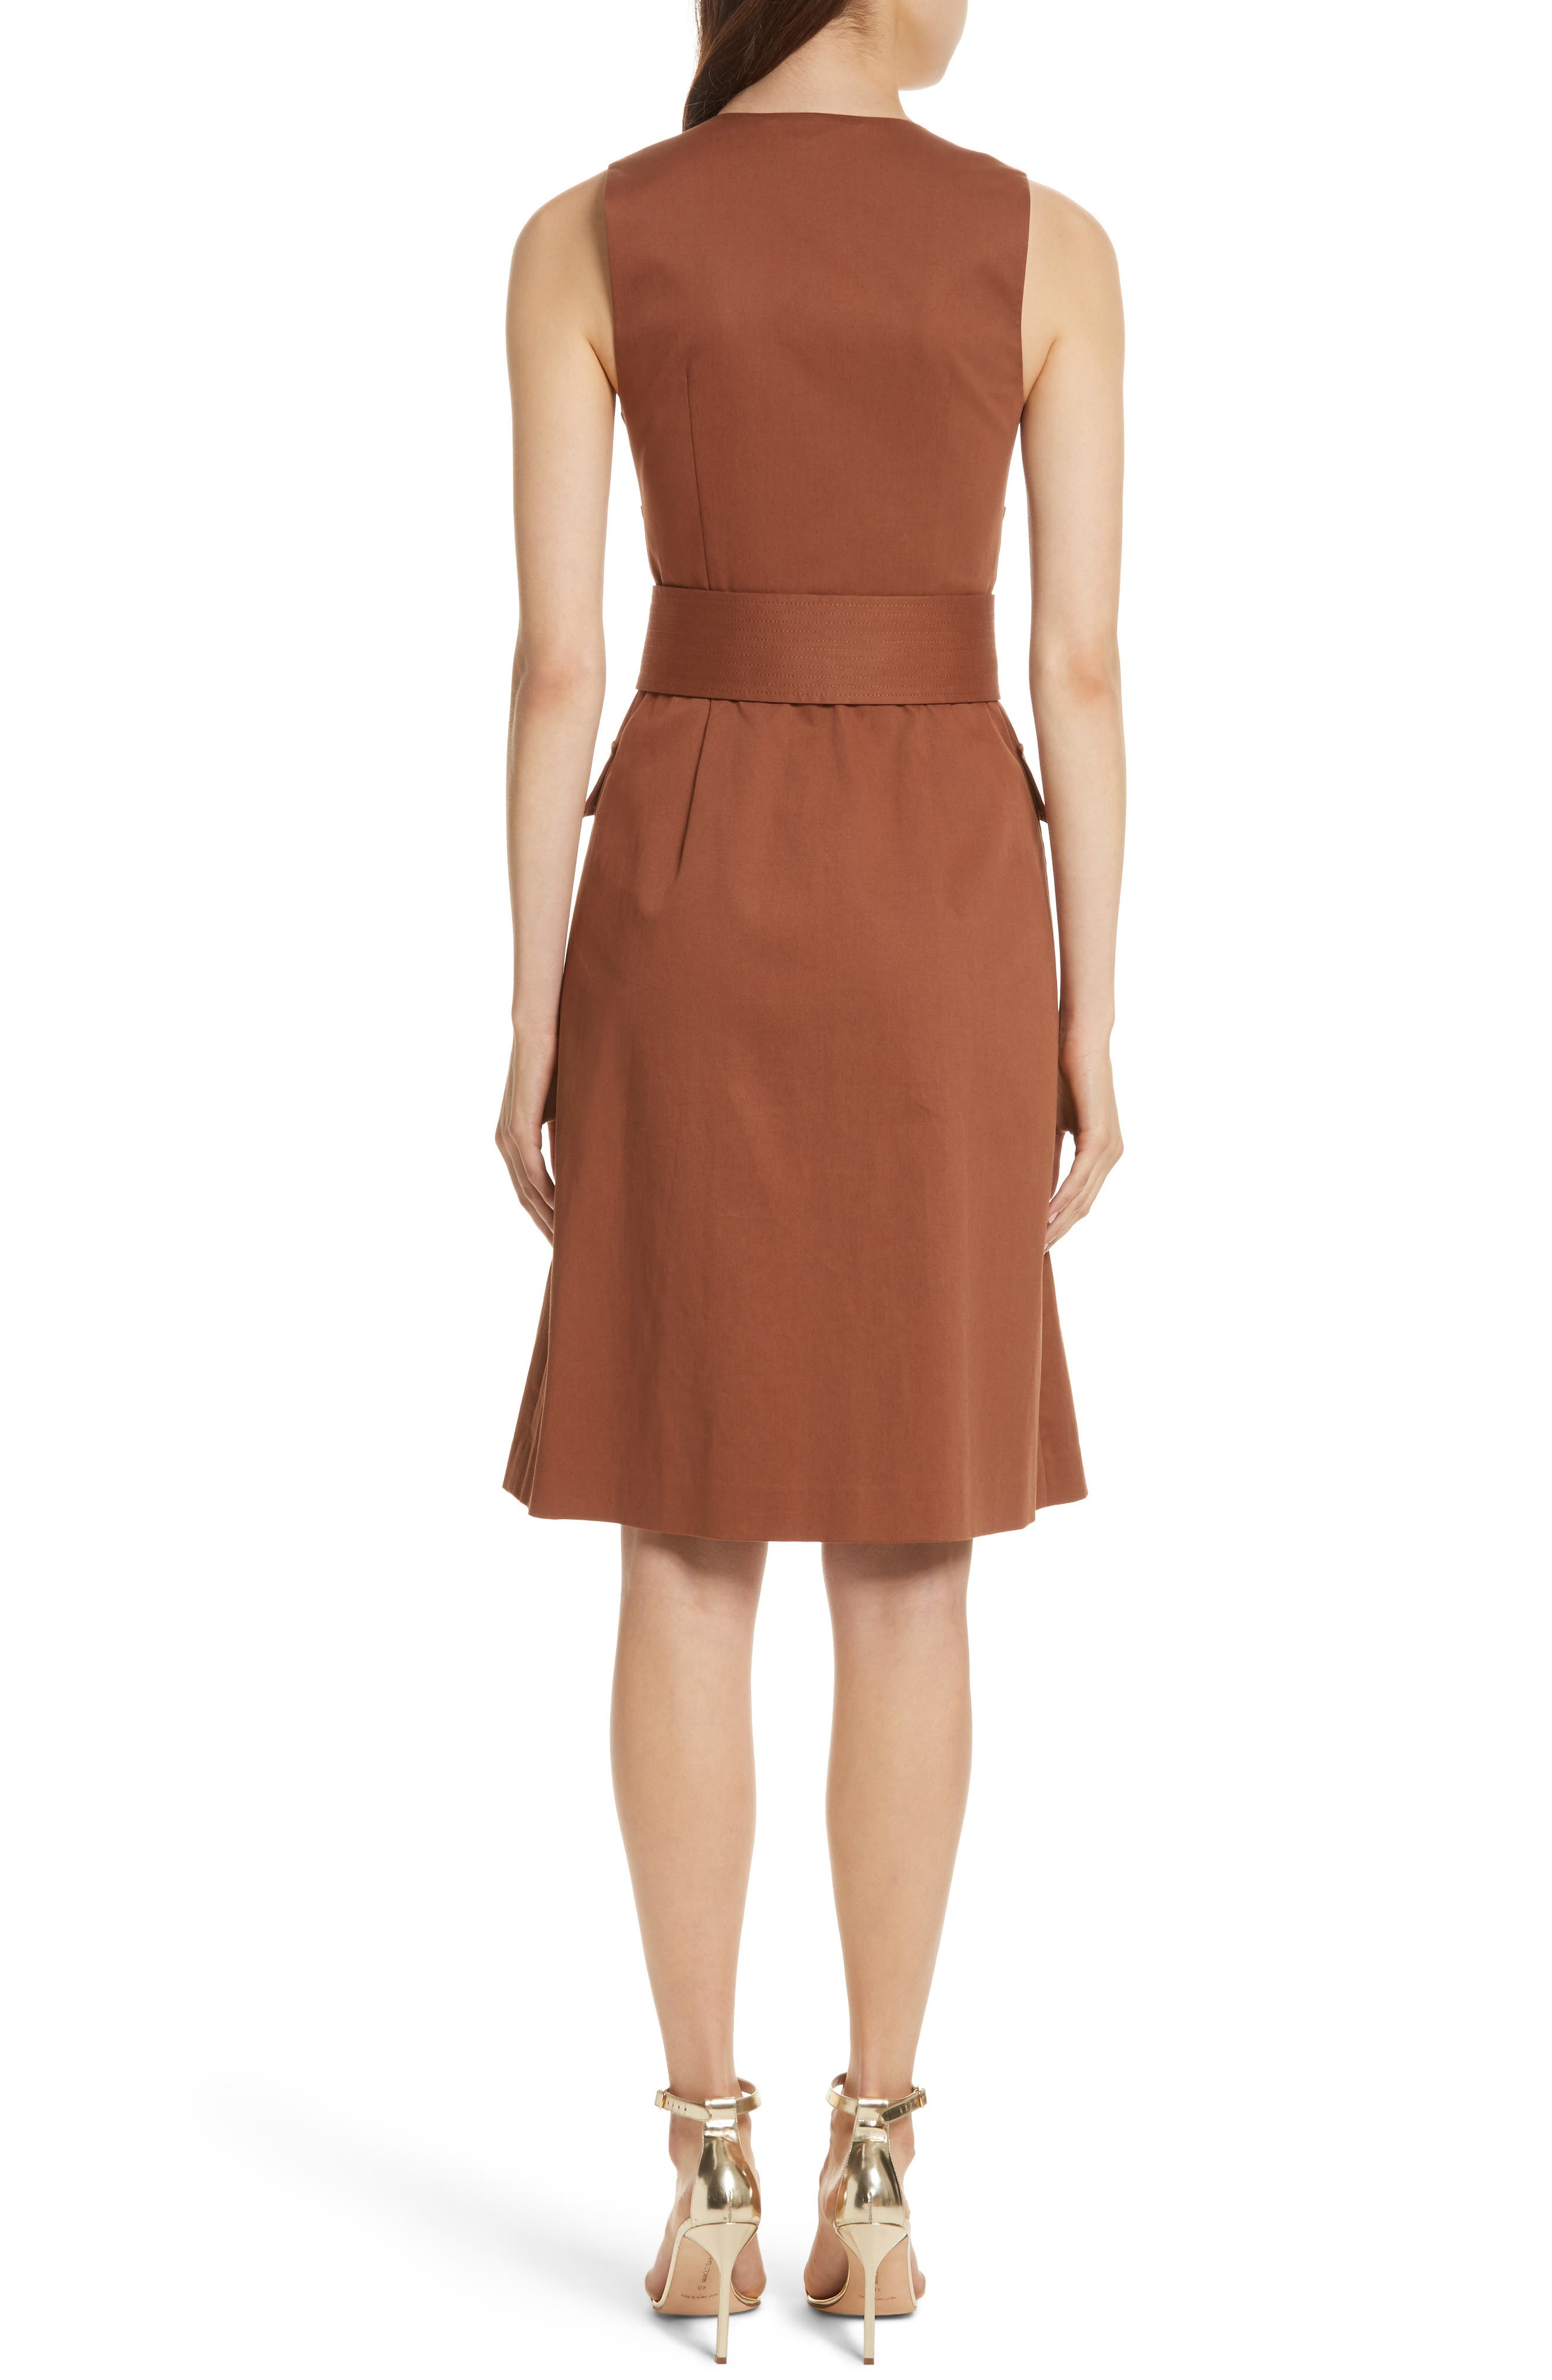 Diane von Furstenberg Zip Front Dress,                             Alternate thumbnail 2, color,                             203